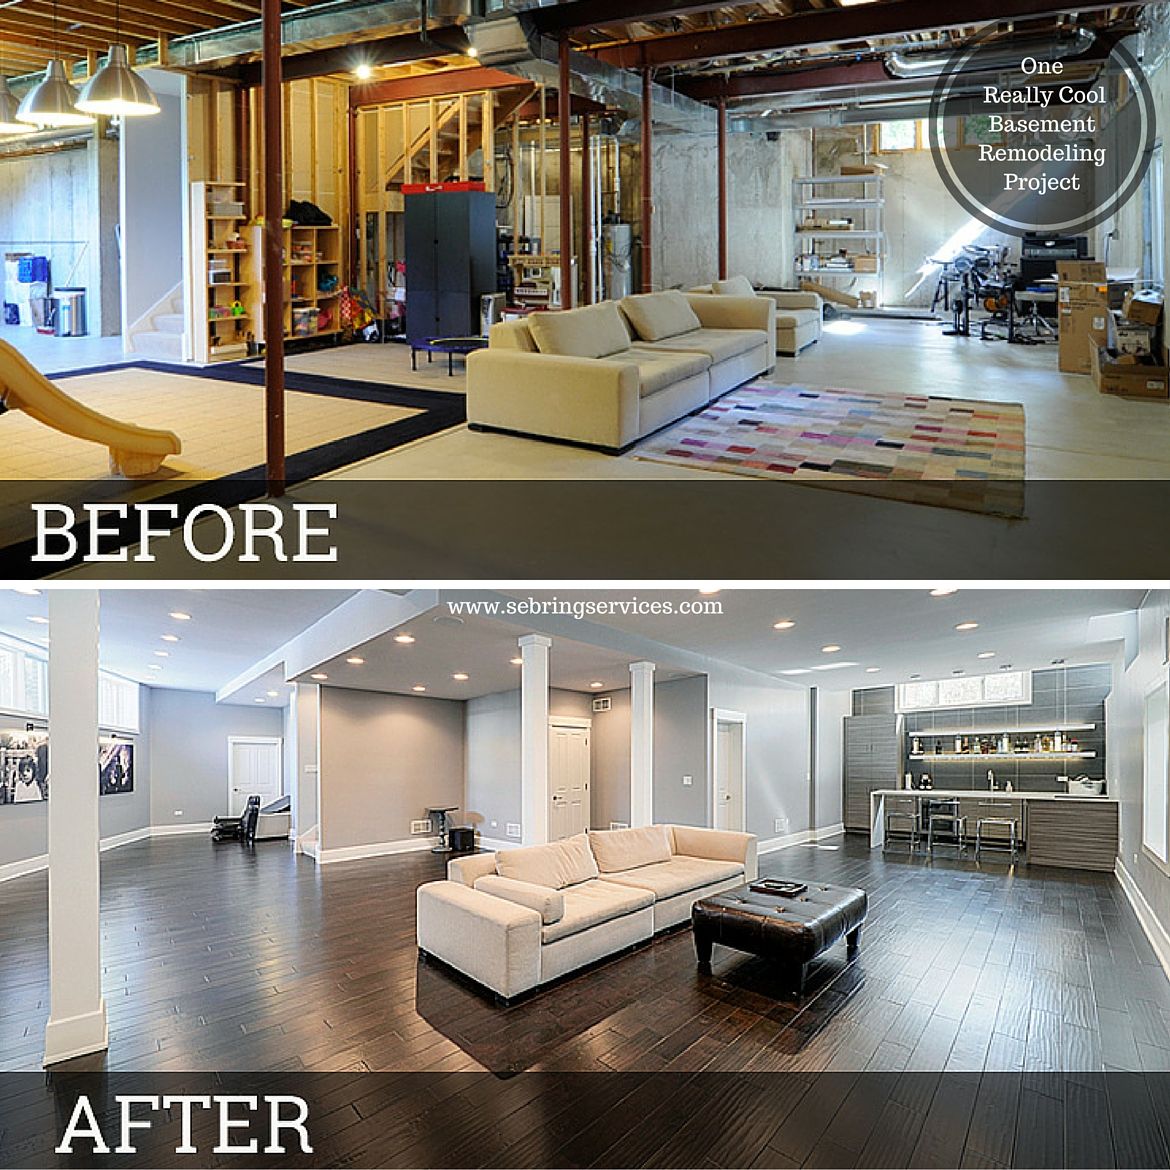 Before And After Garage Remodels: 10 Inspirational Basement Remodels! Before And After